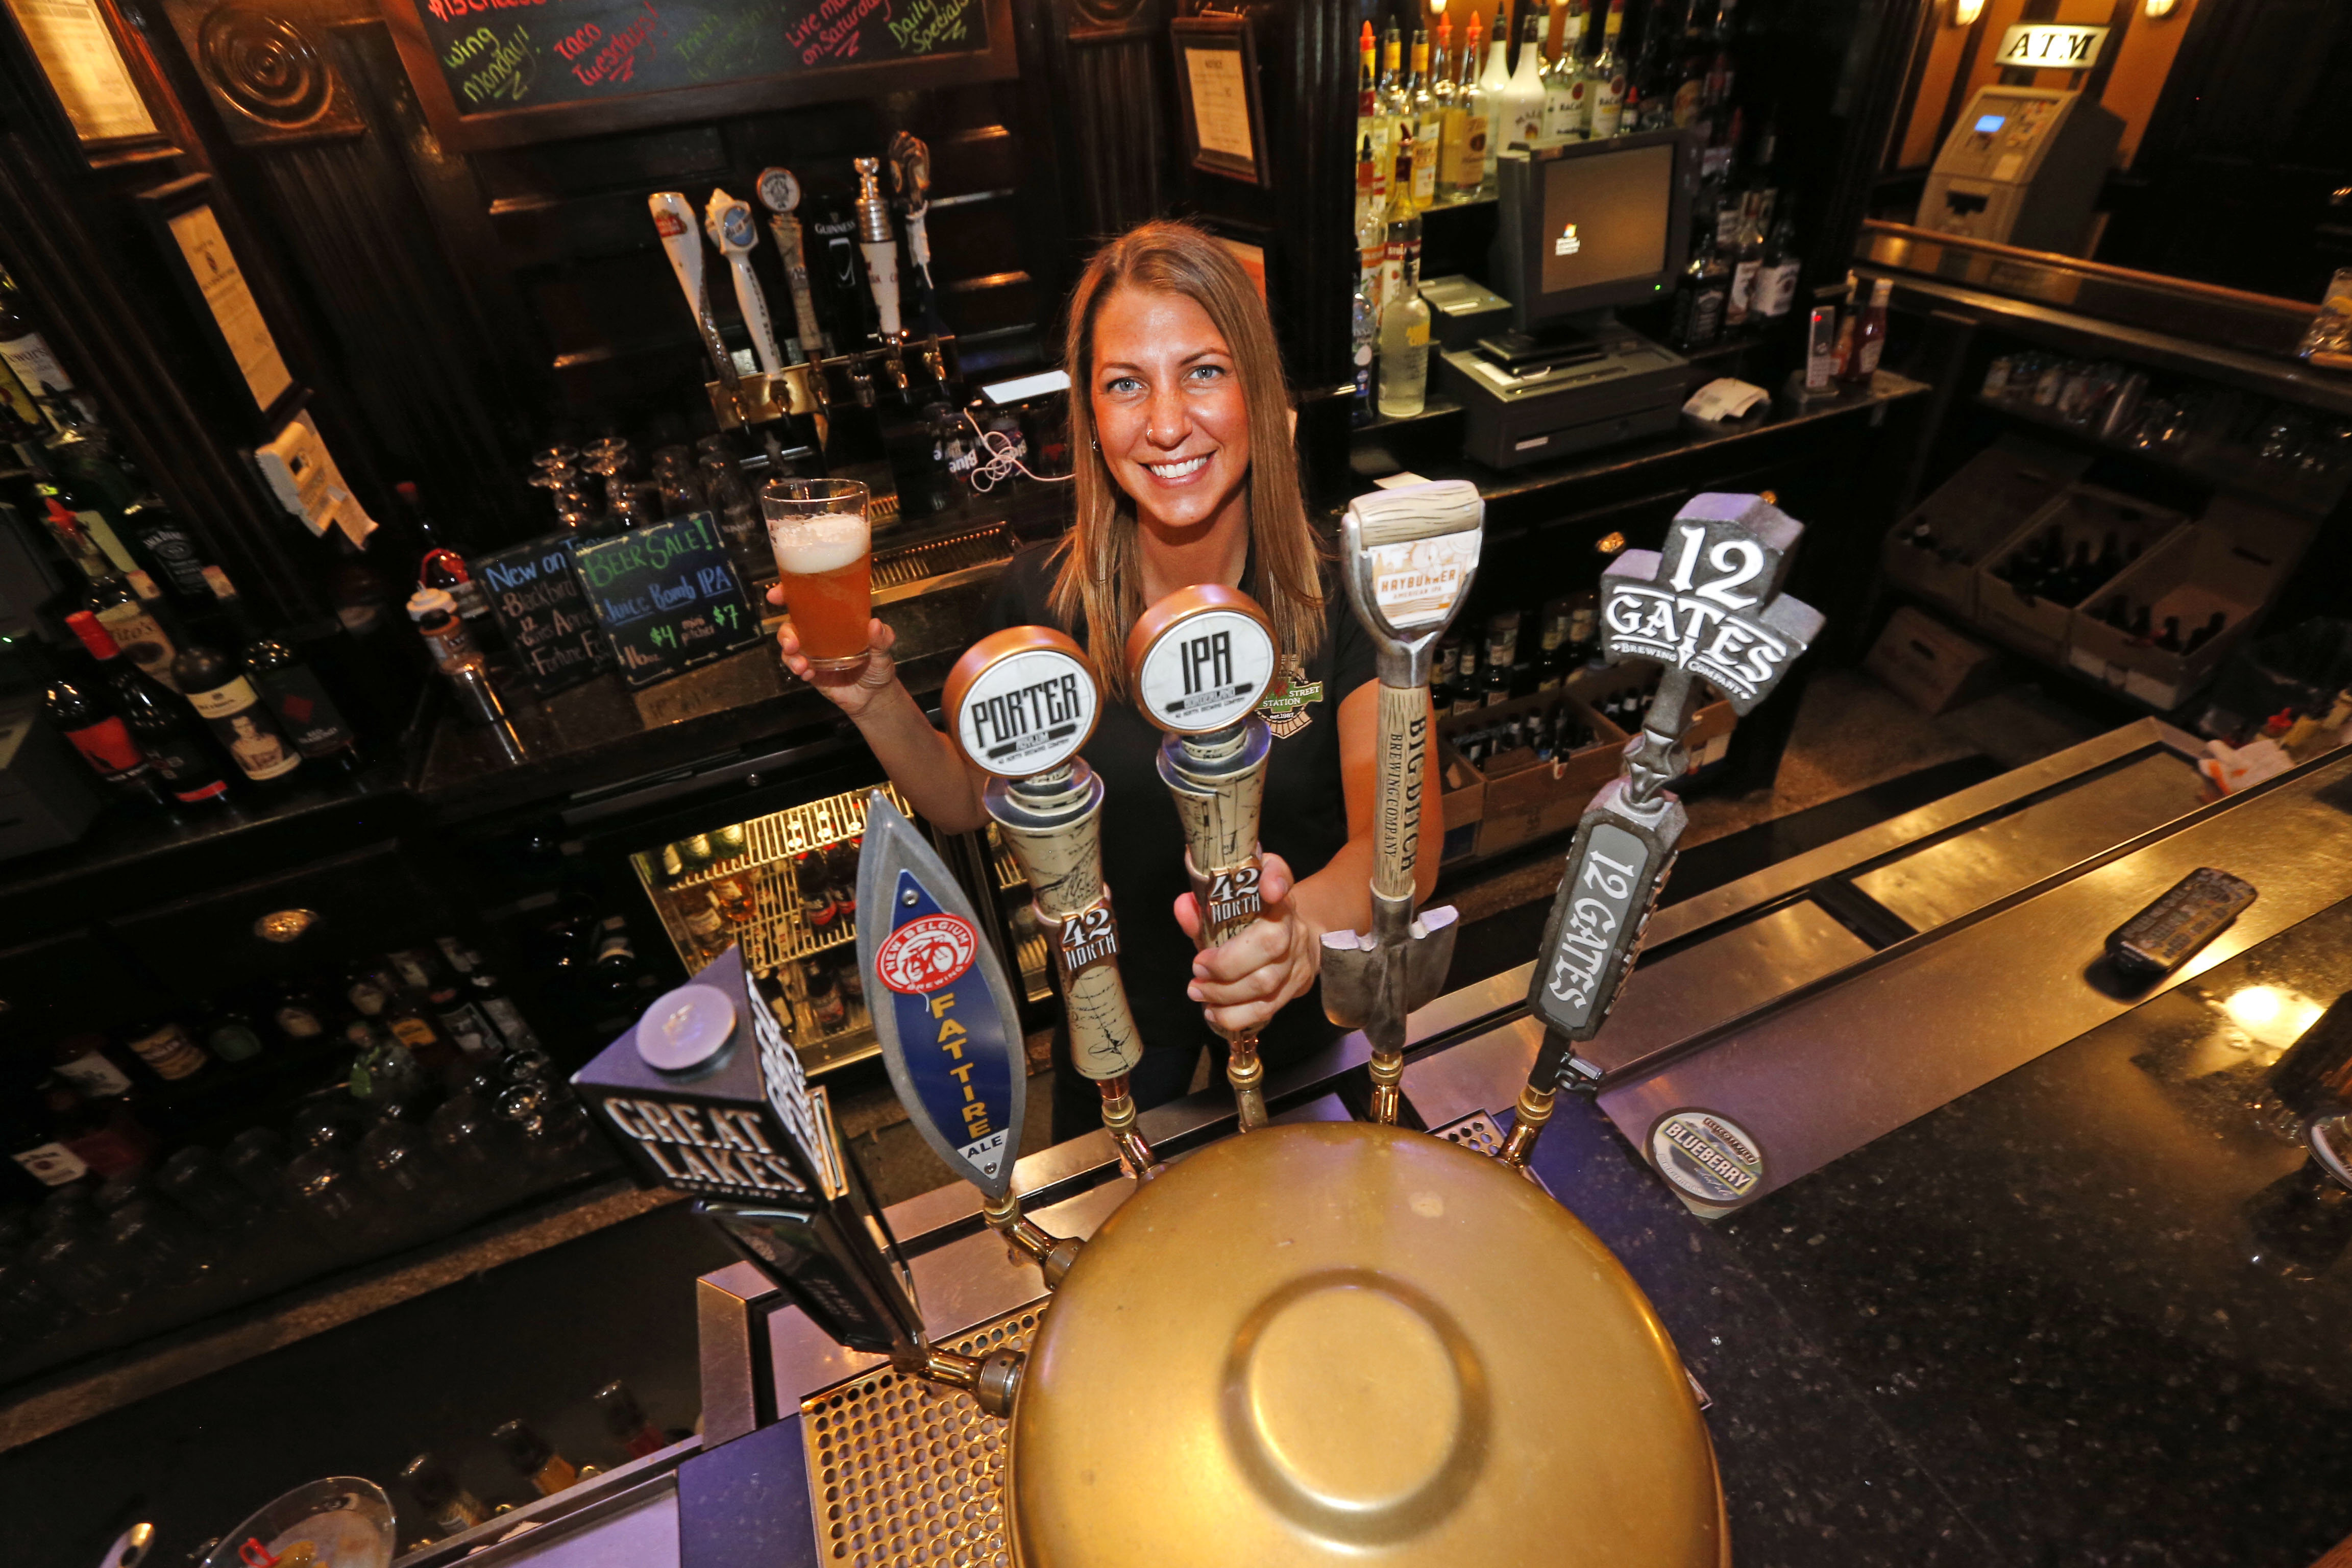 Bartender Candice Kulikowski pours a 42 North IPA at Riley Street Station in East Aurora. (Robert Kirkham/Buffalo News)